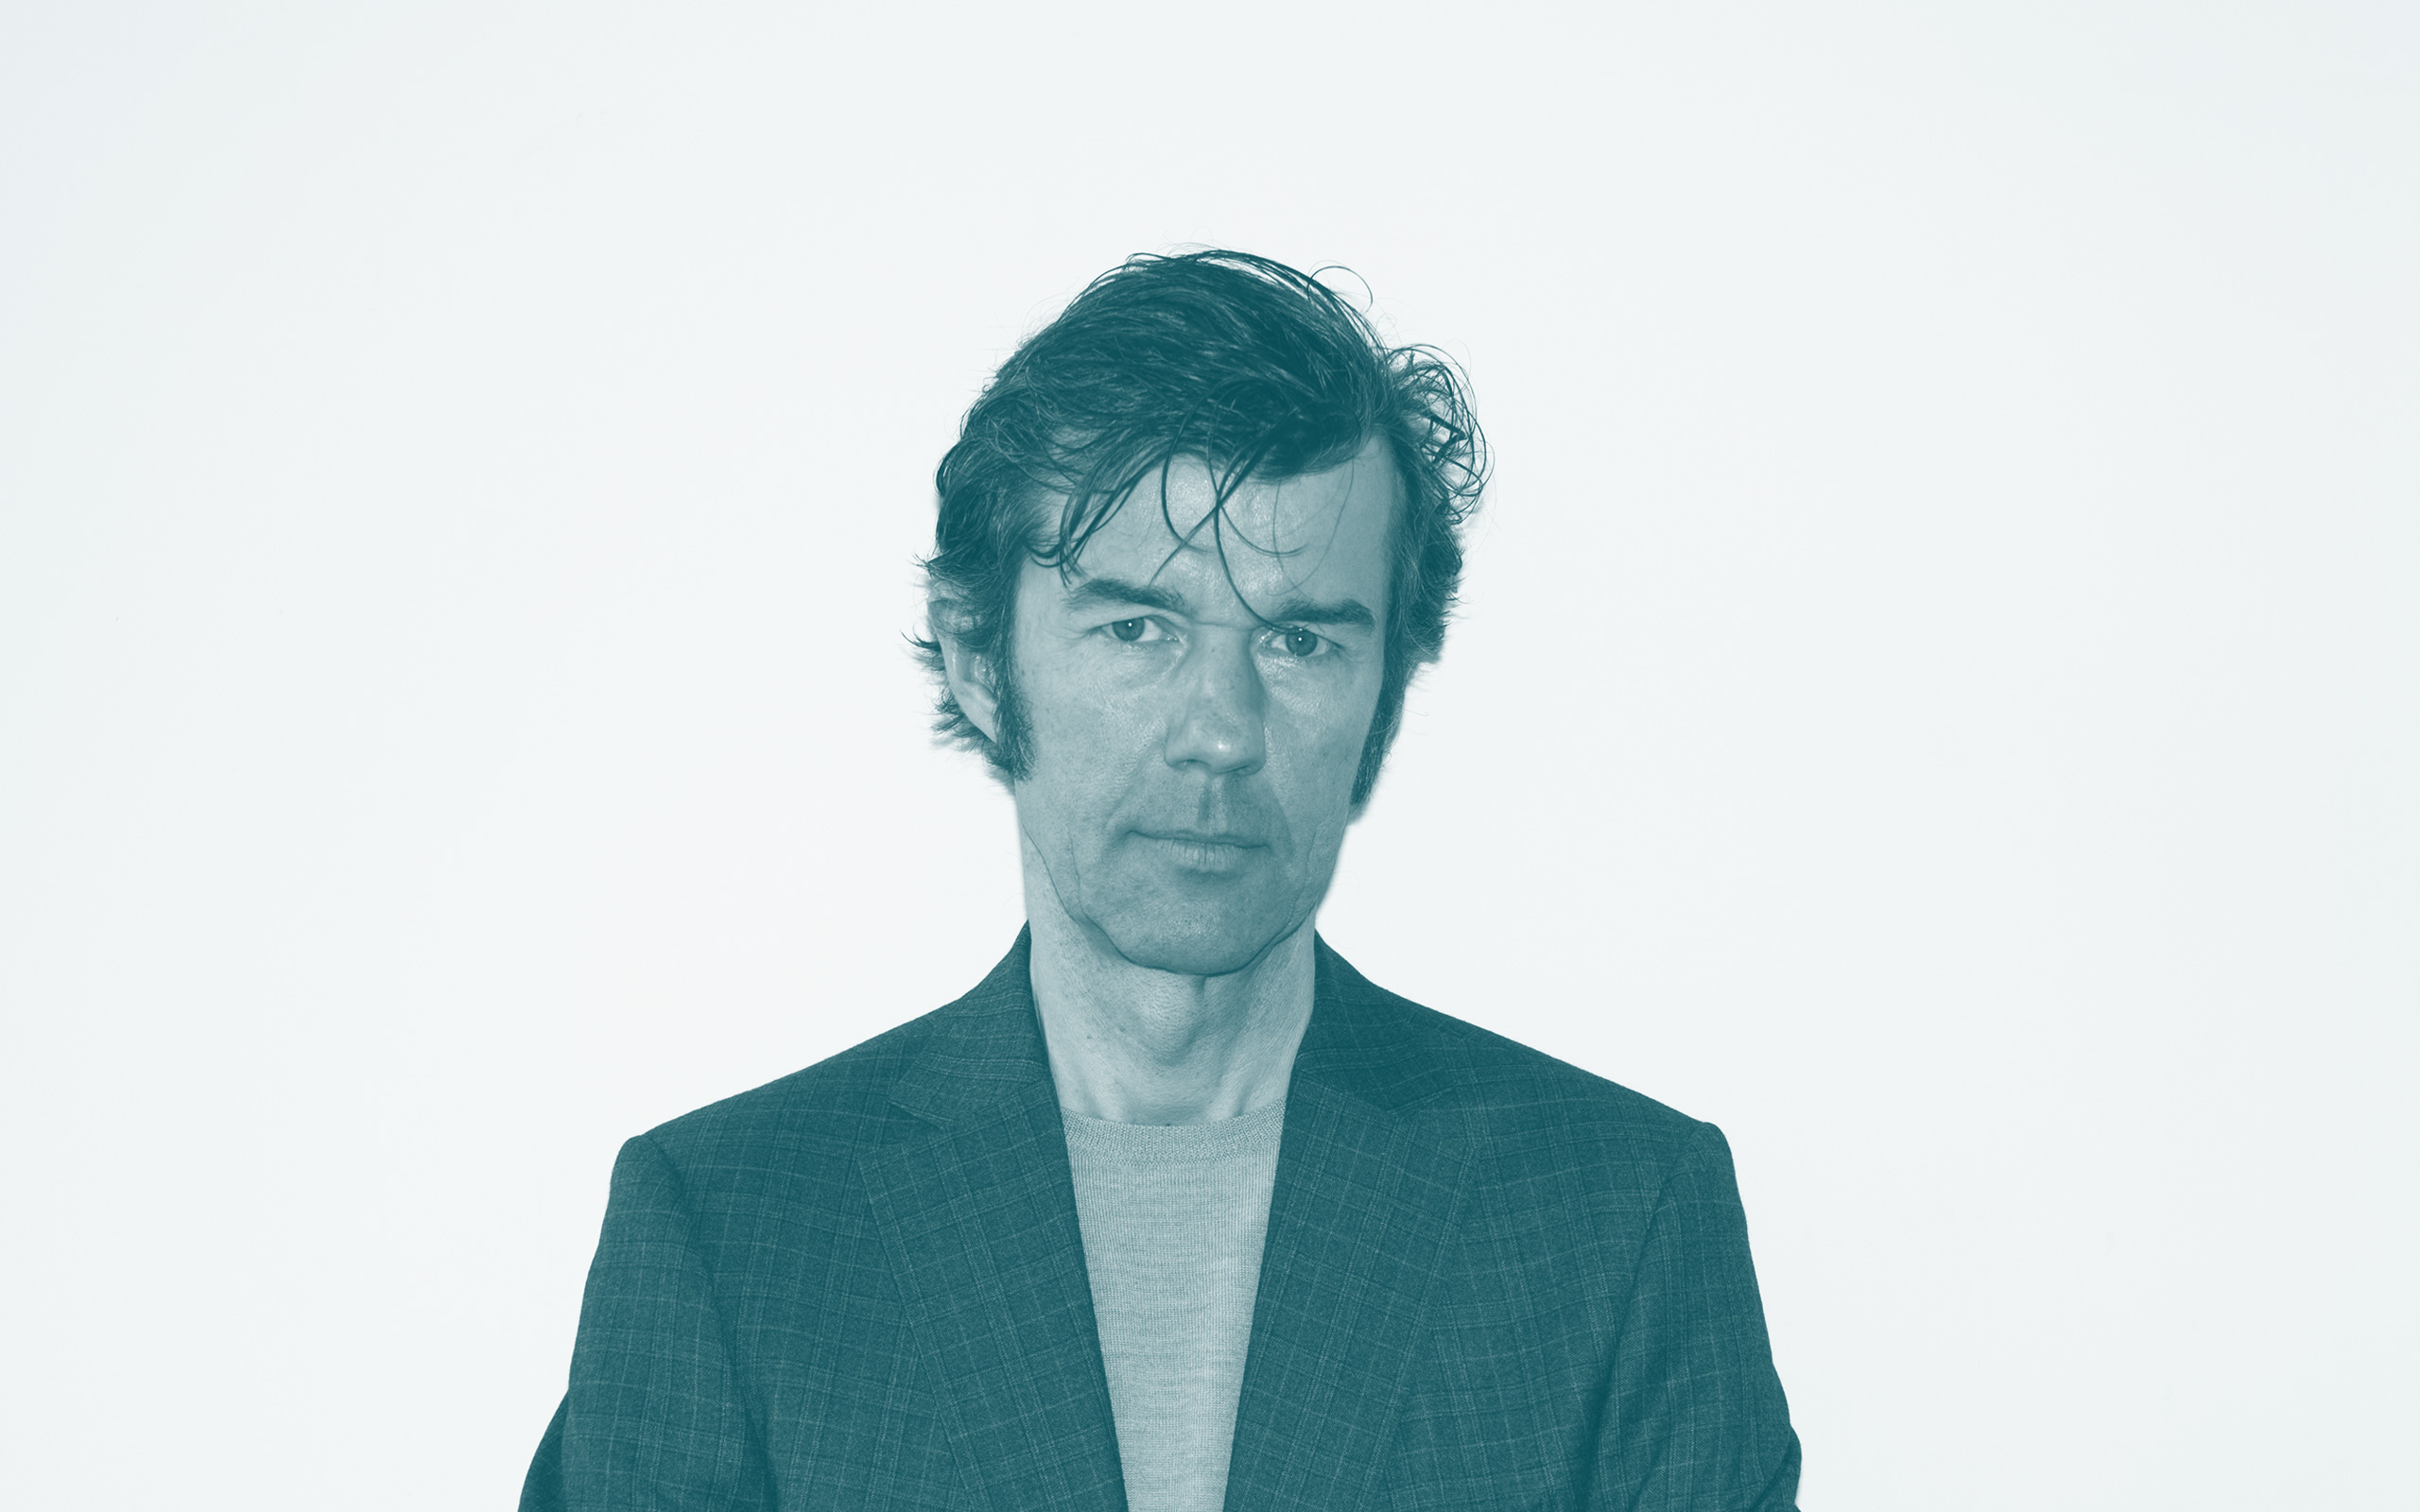 Designer, beauty advocate and Phaidon author, Stefan Sagmeister